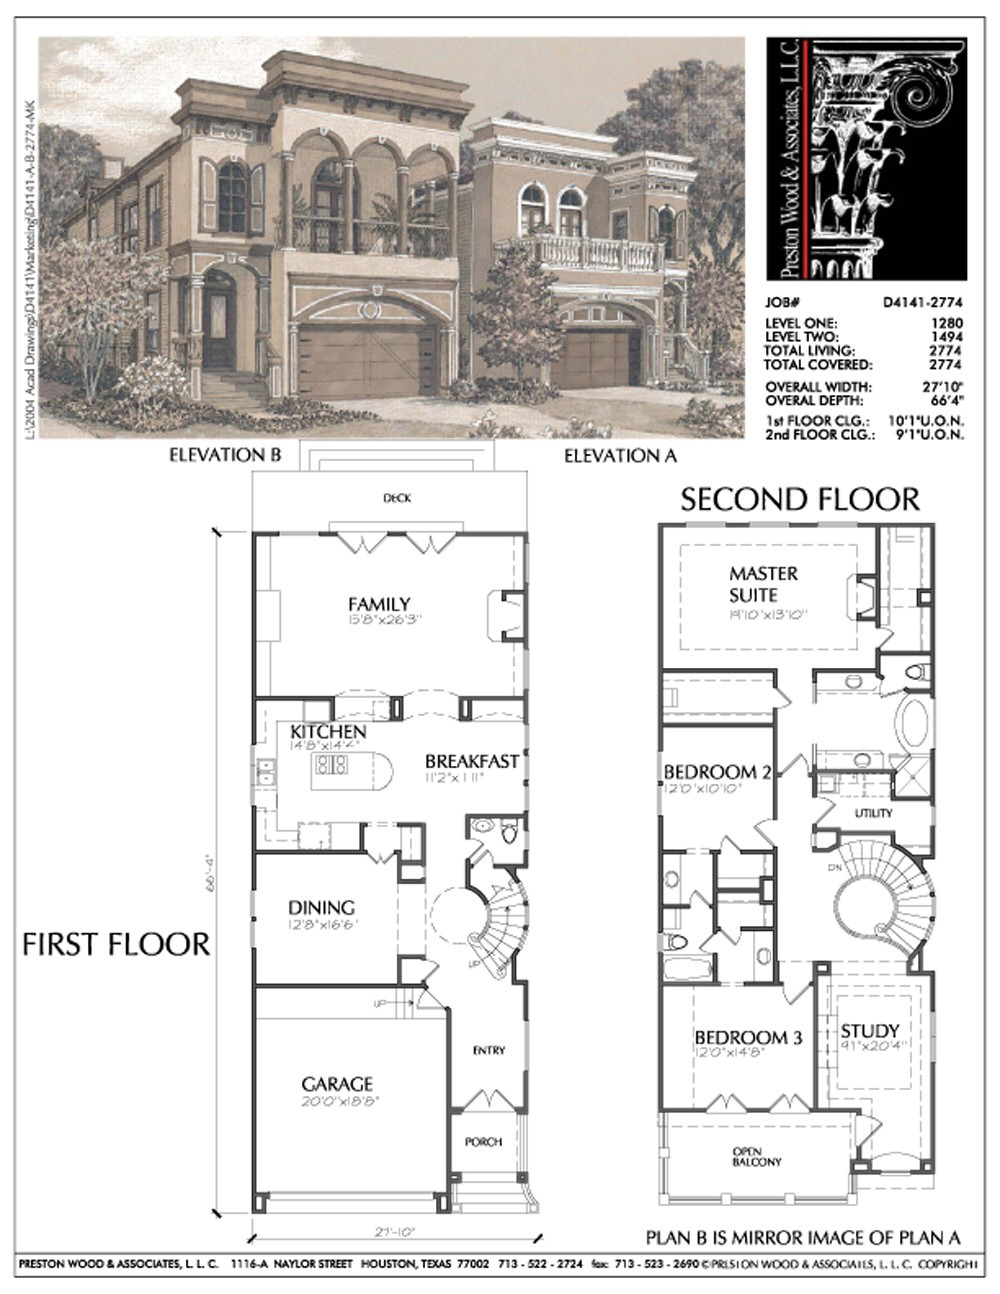 Waterfront Narrow Lot House Plans Awesome Mediterranean House Plans Two Story Waterfront Narrow for